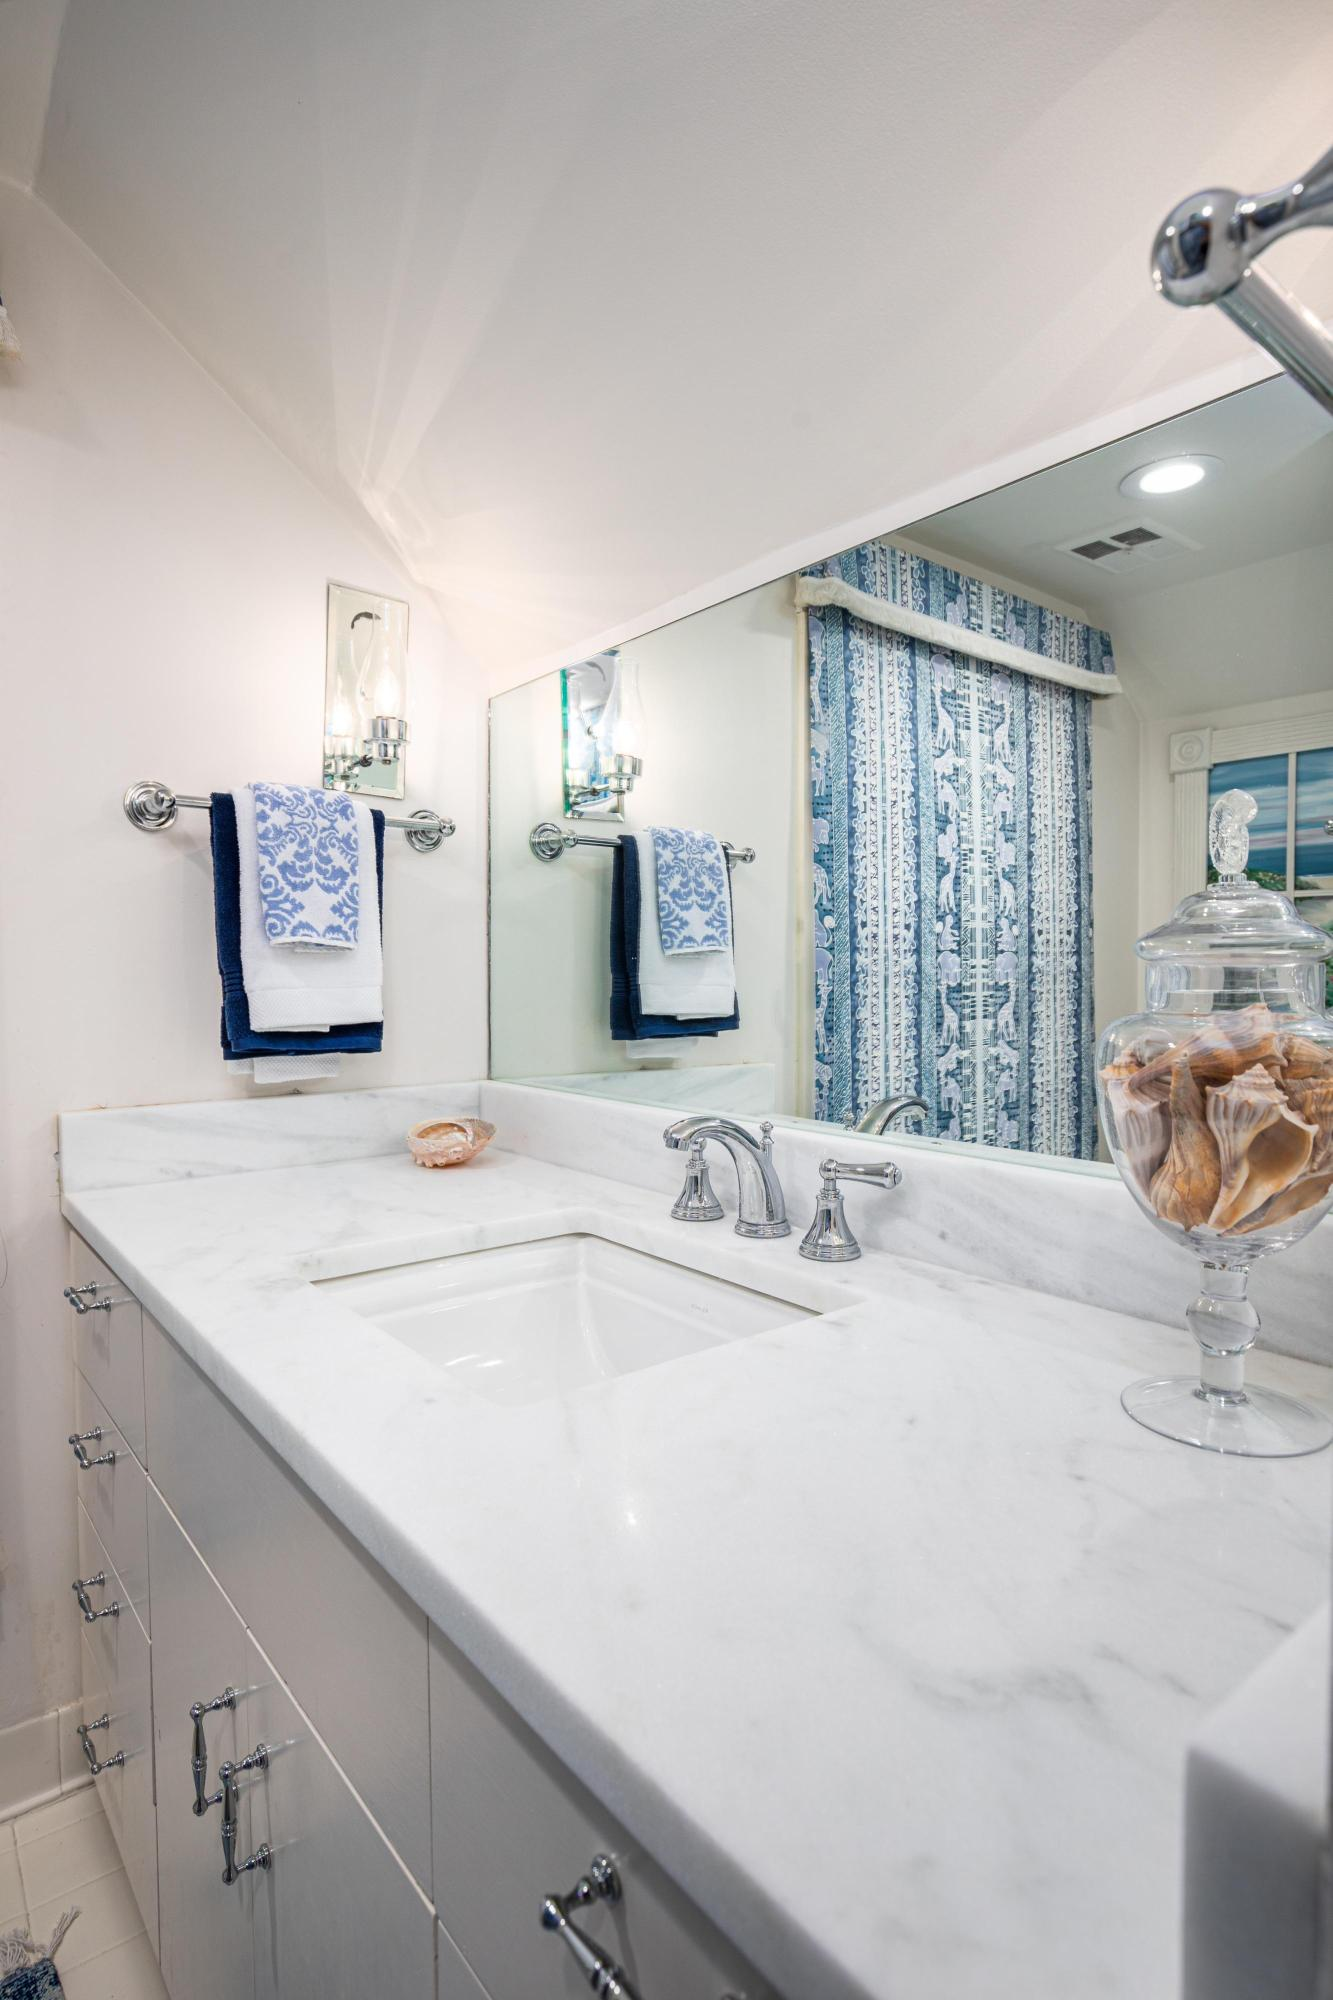 South of Broad Homes For Sale - 5 Legare, Charleston, SC - 0